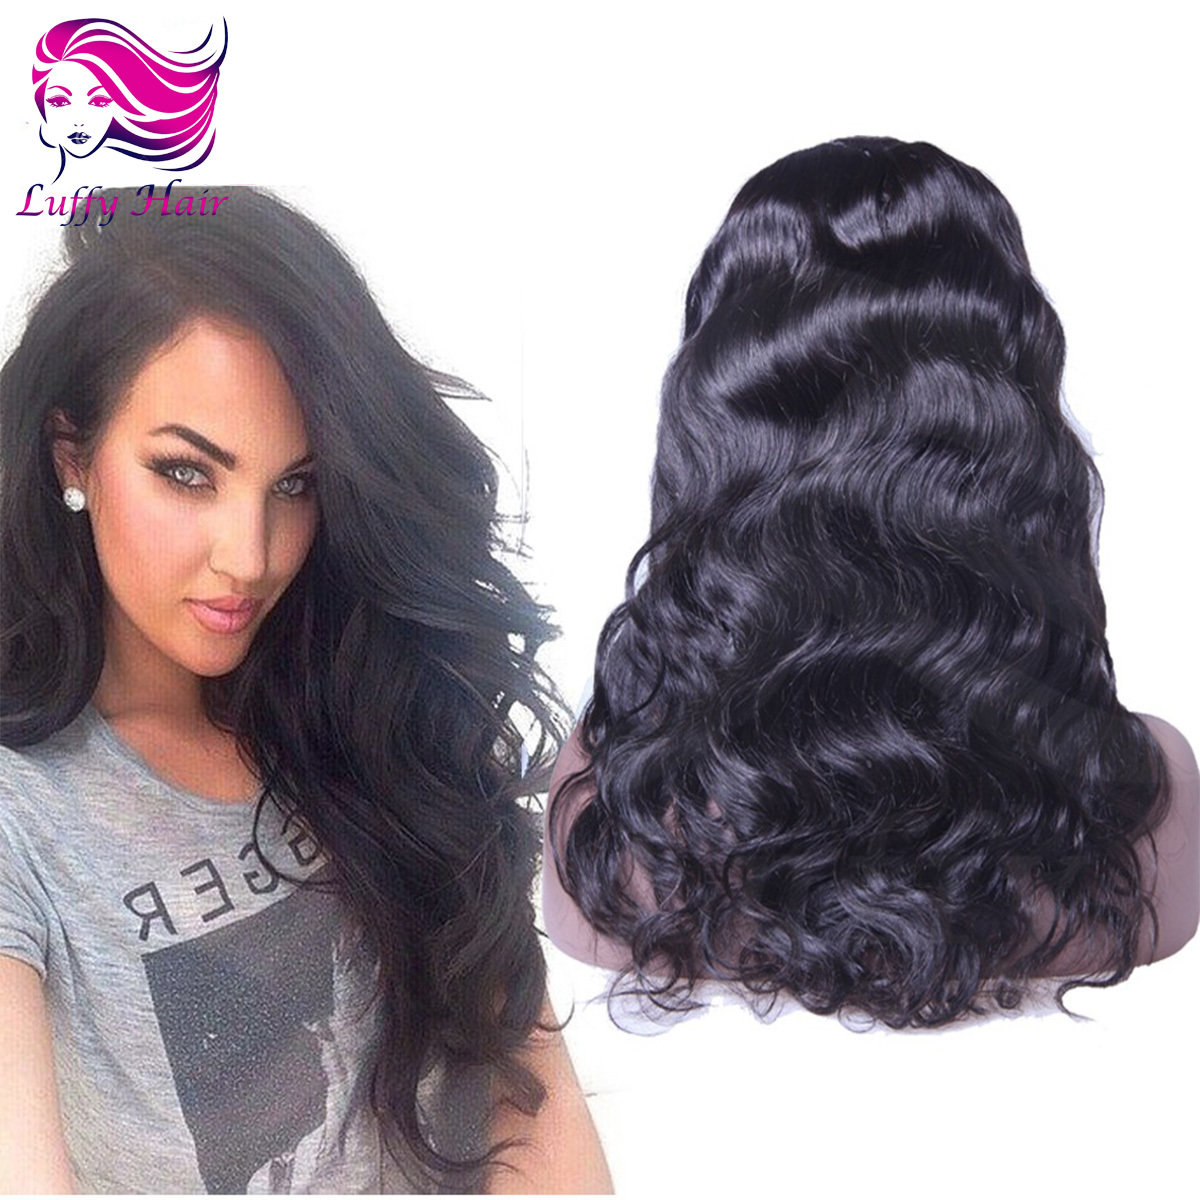 8A Virgin Human Hair Natural Wave Wig - KWL044C